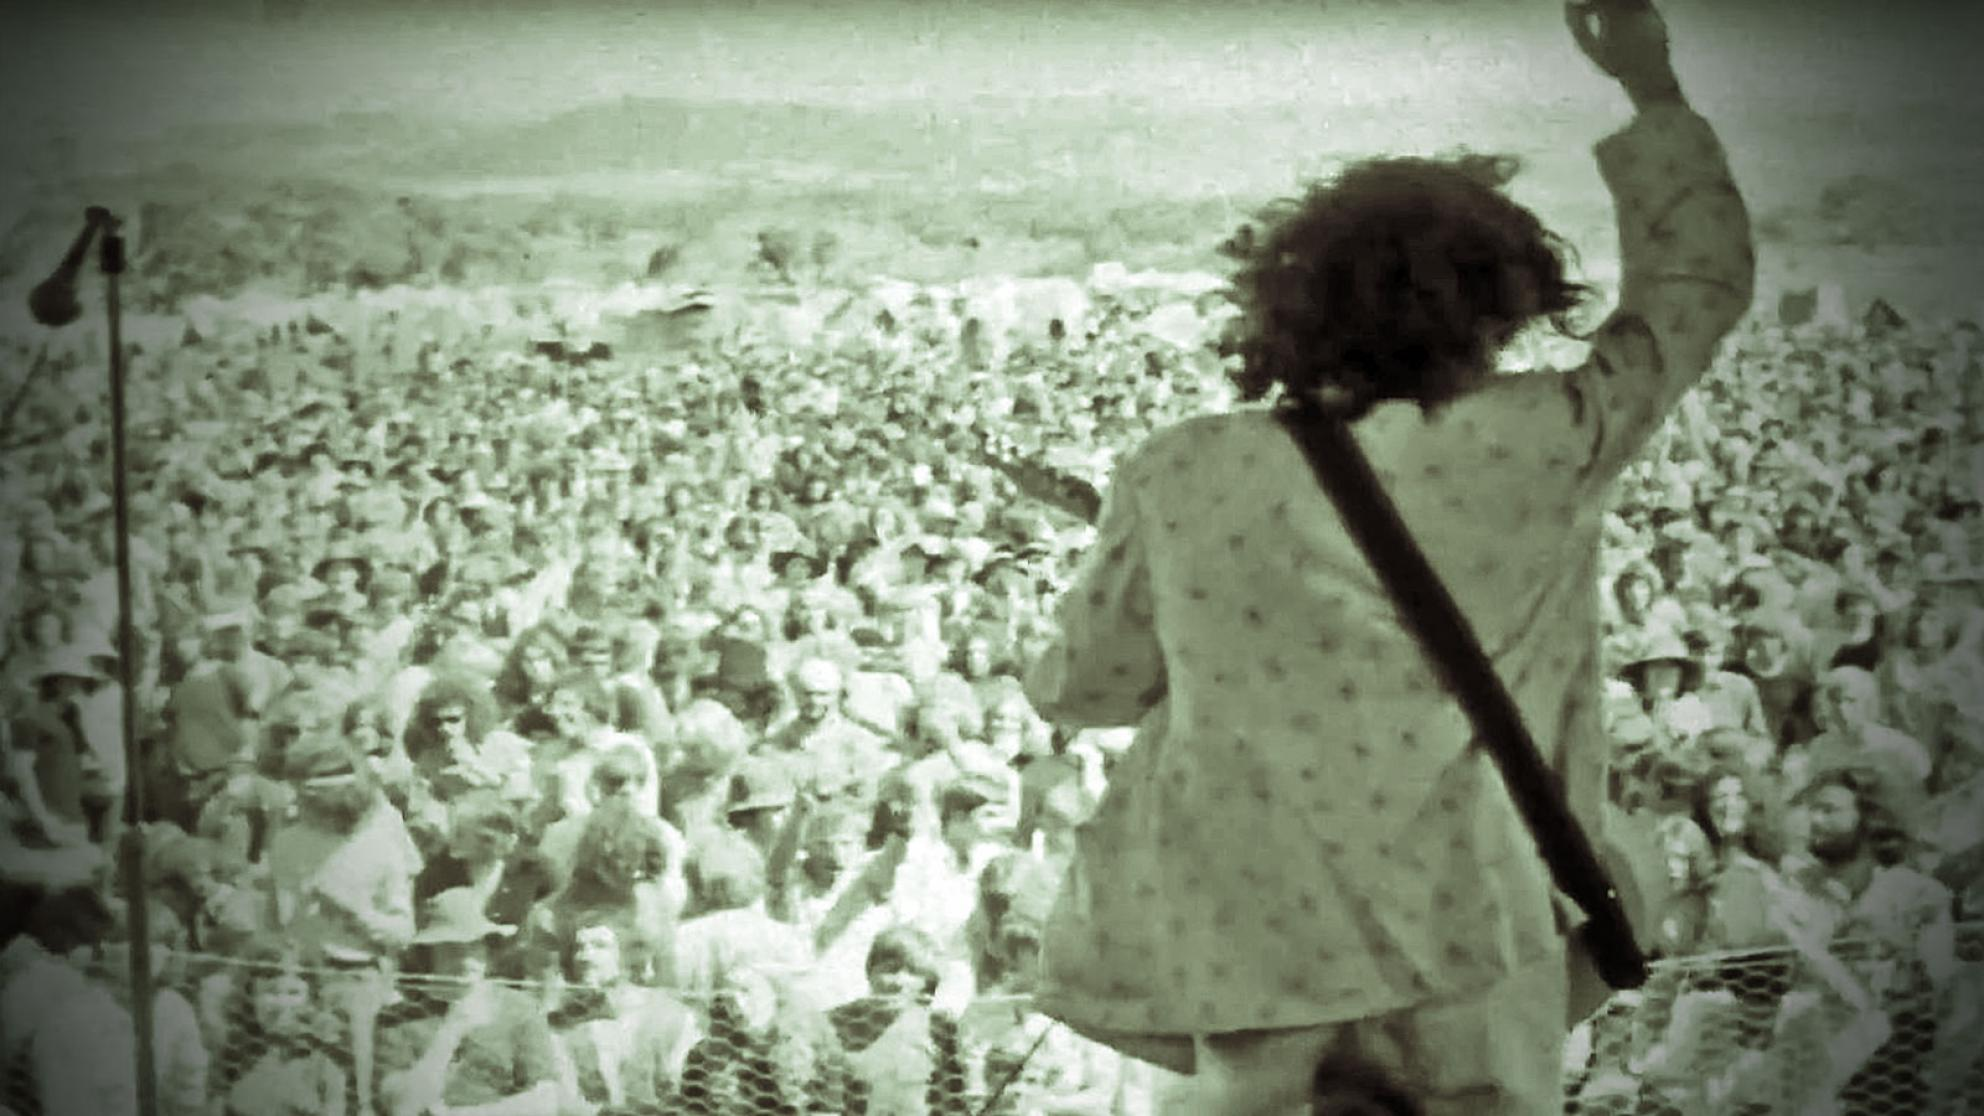 Ross Wilson playing guitar on an outdoor stage with his back to camera, facing a large crowd with his right arm raised, from a screenshot of the film clip for the song Eagle Rock.